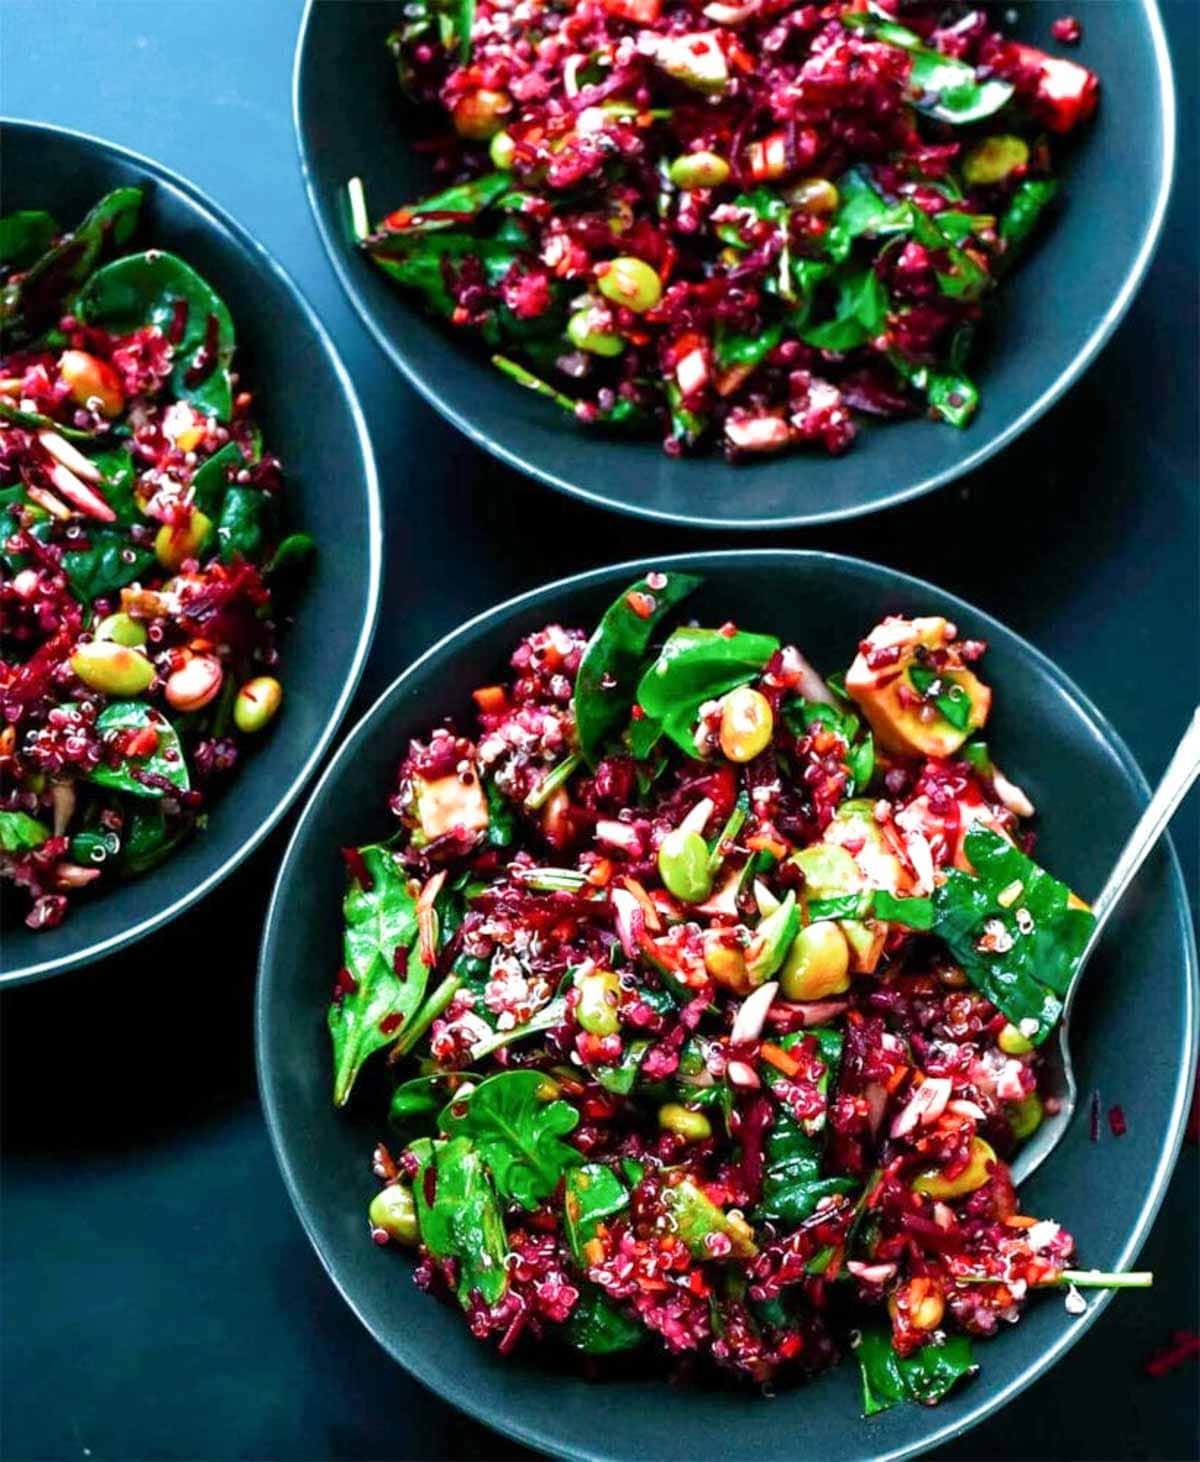 spring recipes featuring beets